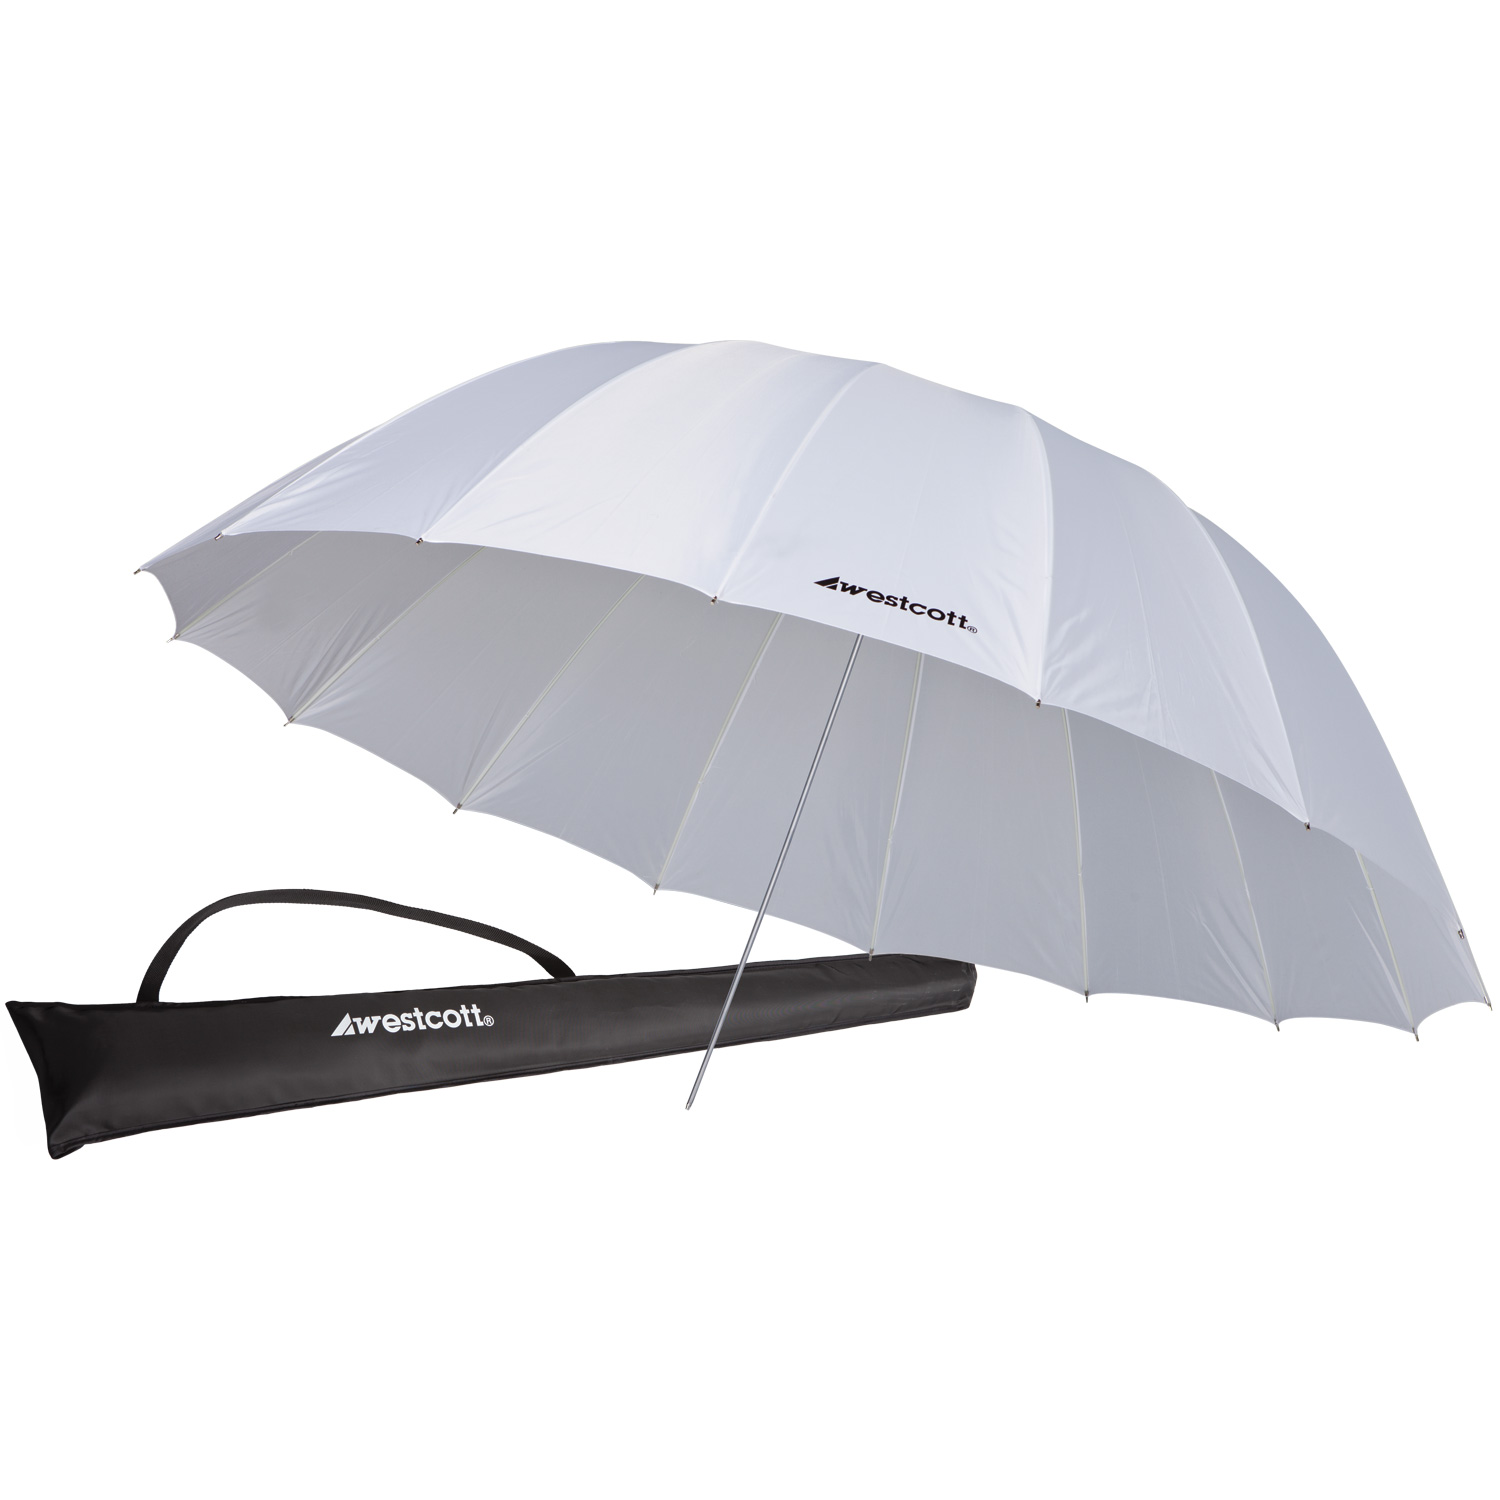 Standard Umbrella - White Diffusion (7')